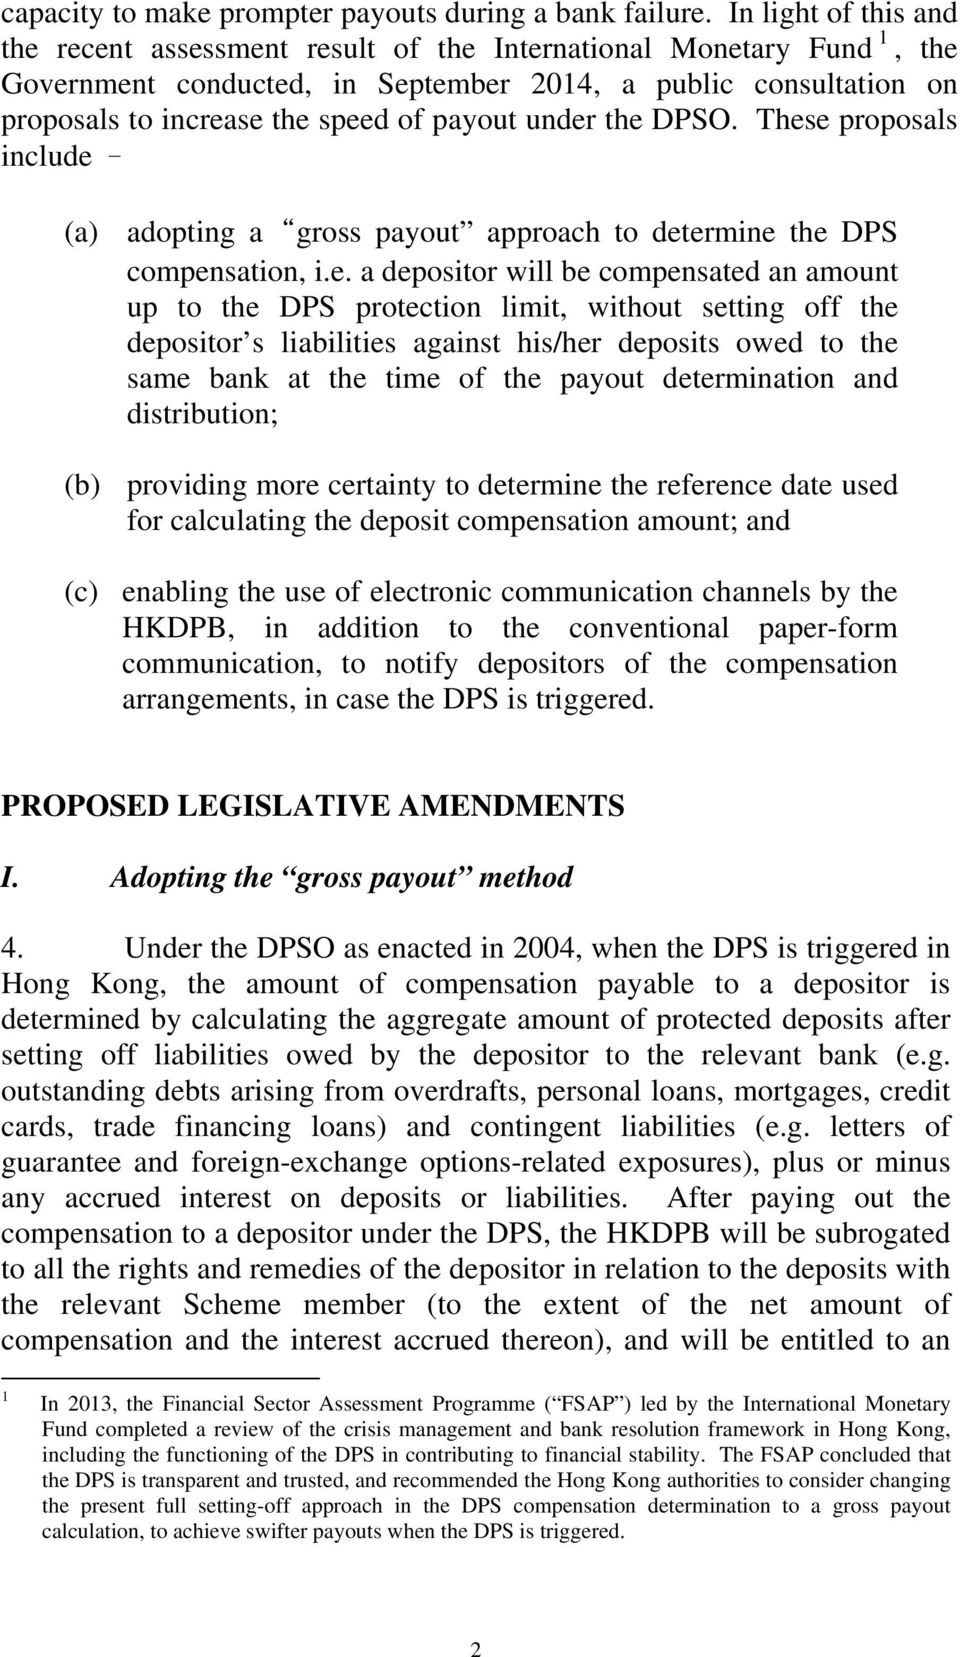 under the DPSO. These proposals include (a) adopting a gross payout approach to determine the DPS compensation, i.e. a depositor will be compensated an amount up to the DPS protection limit, without